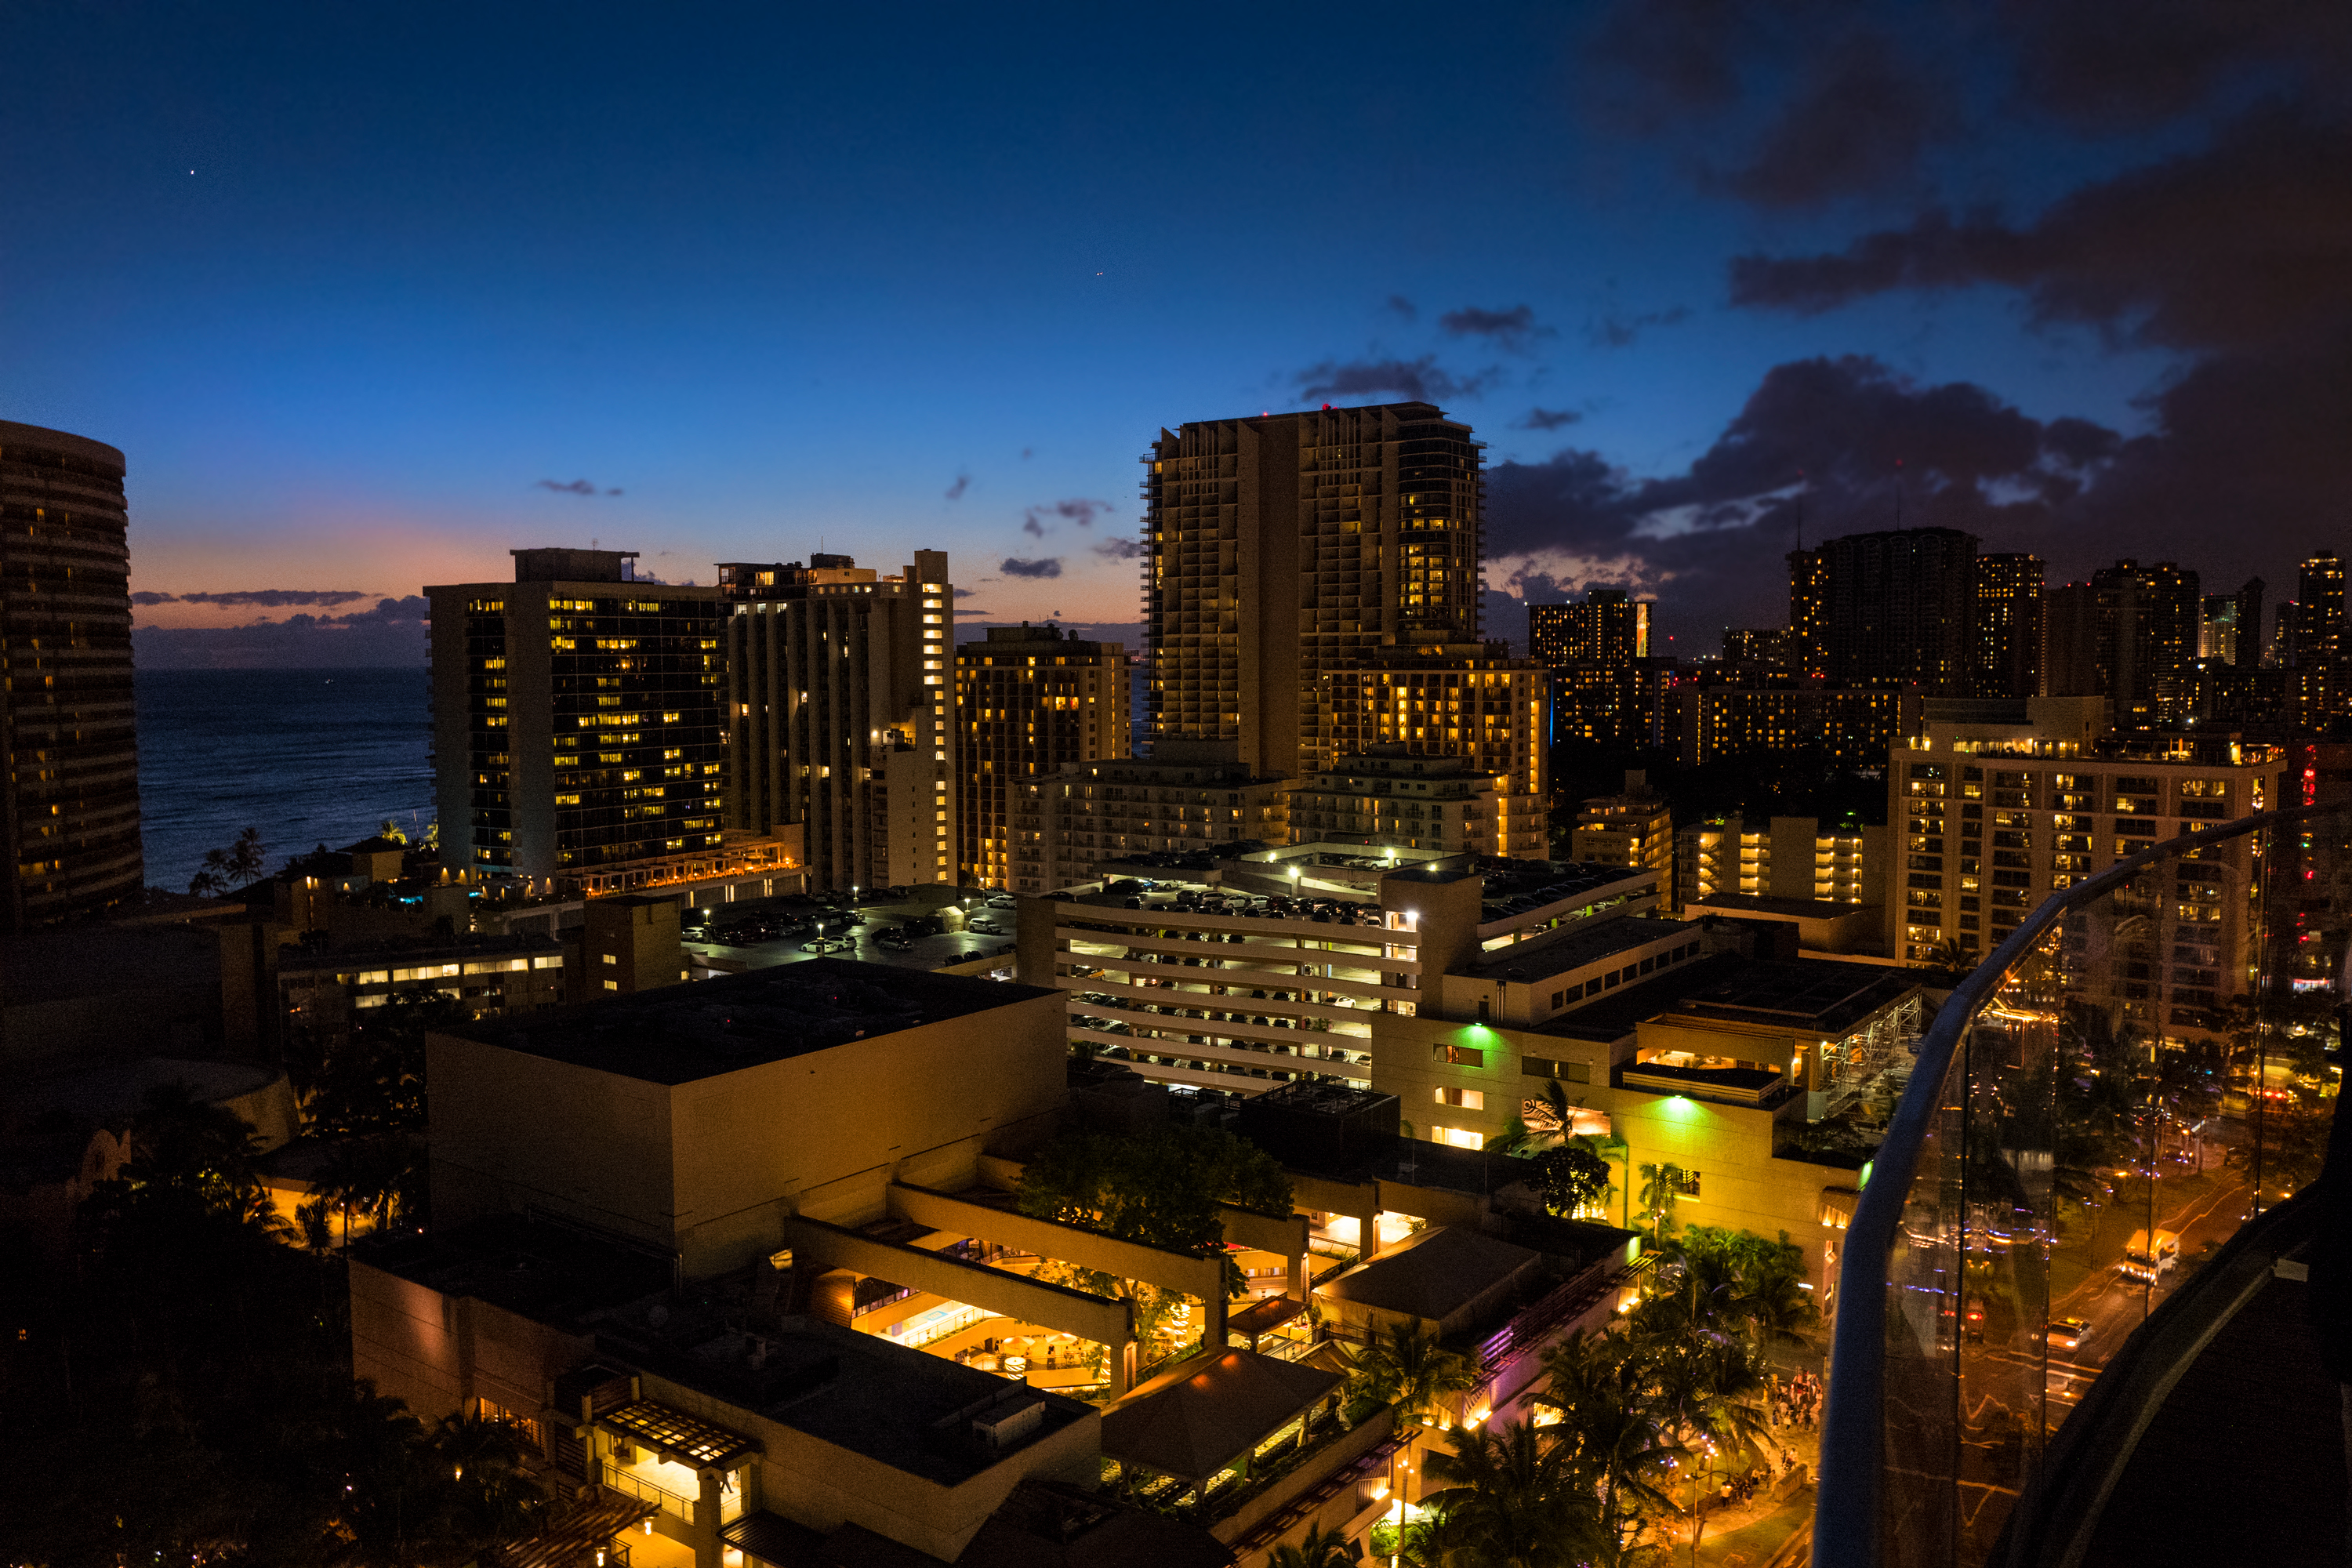 Night View from Sky Waikiki